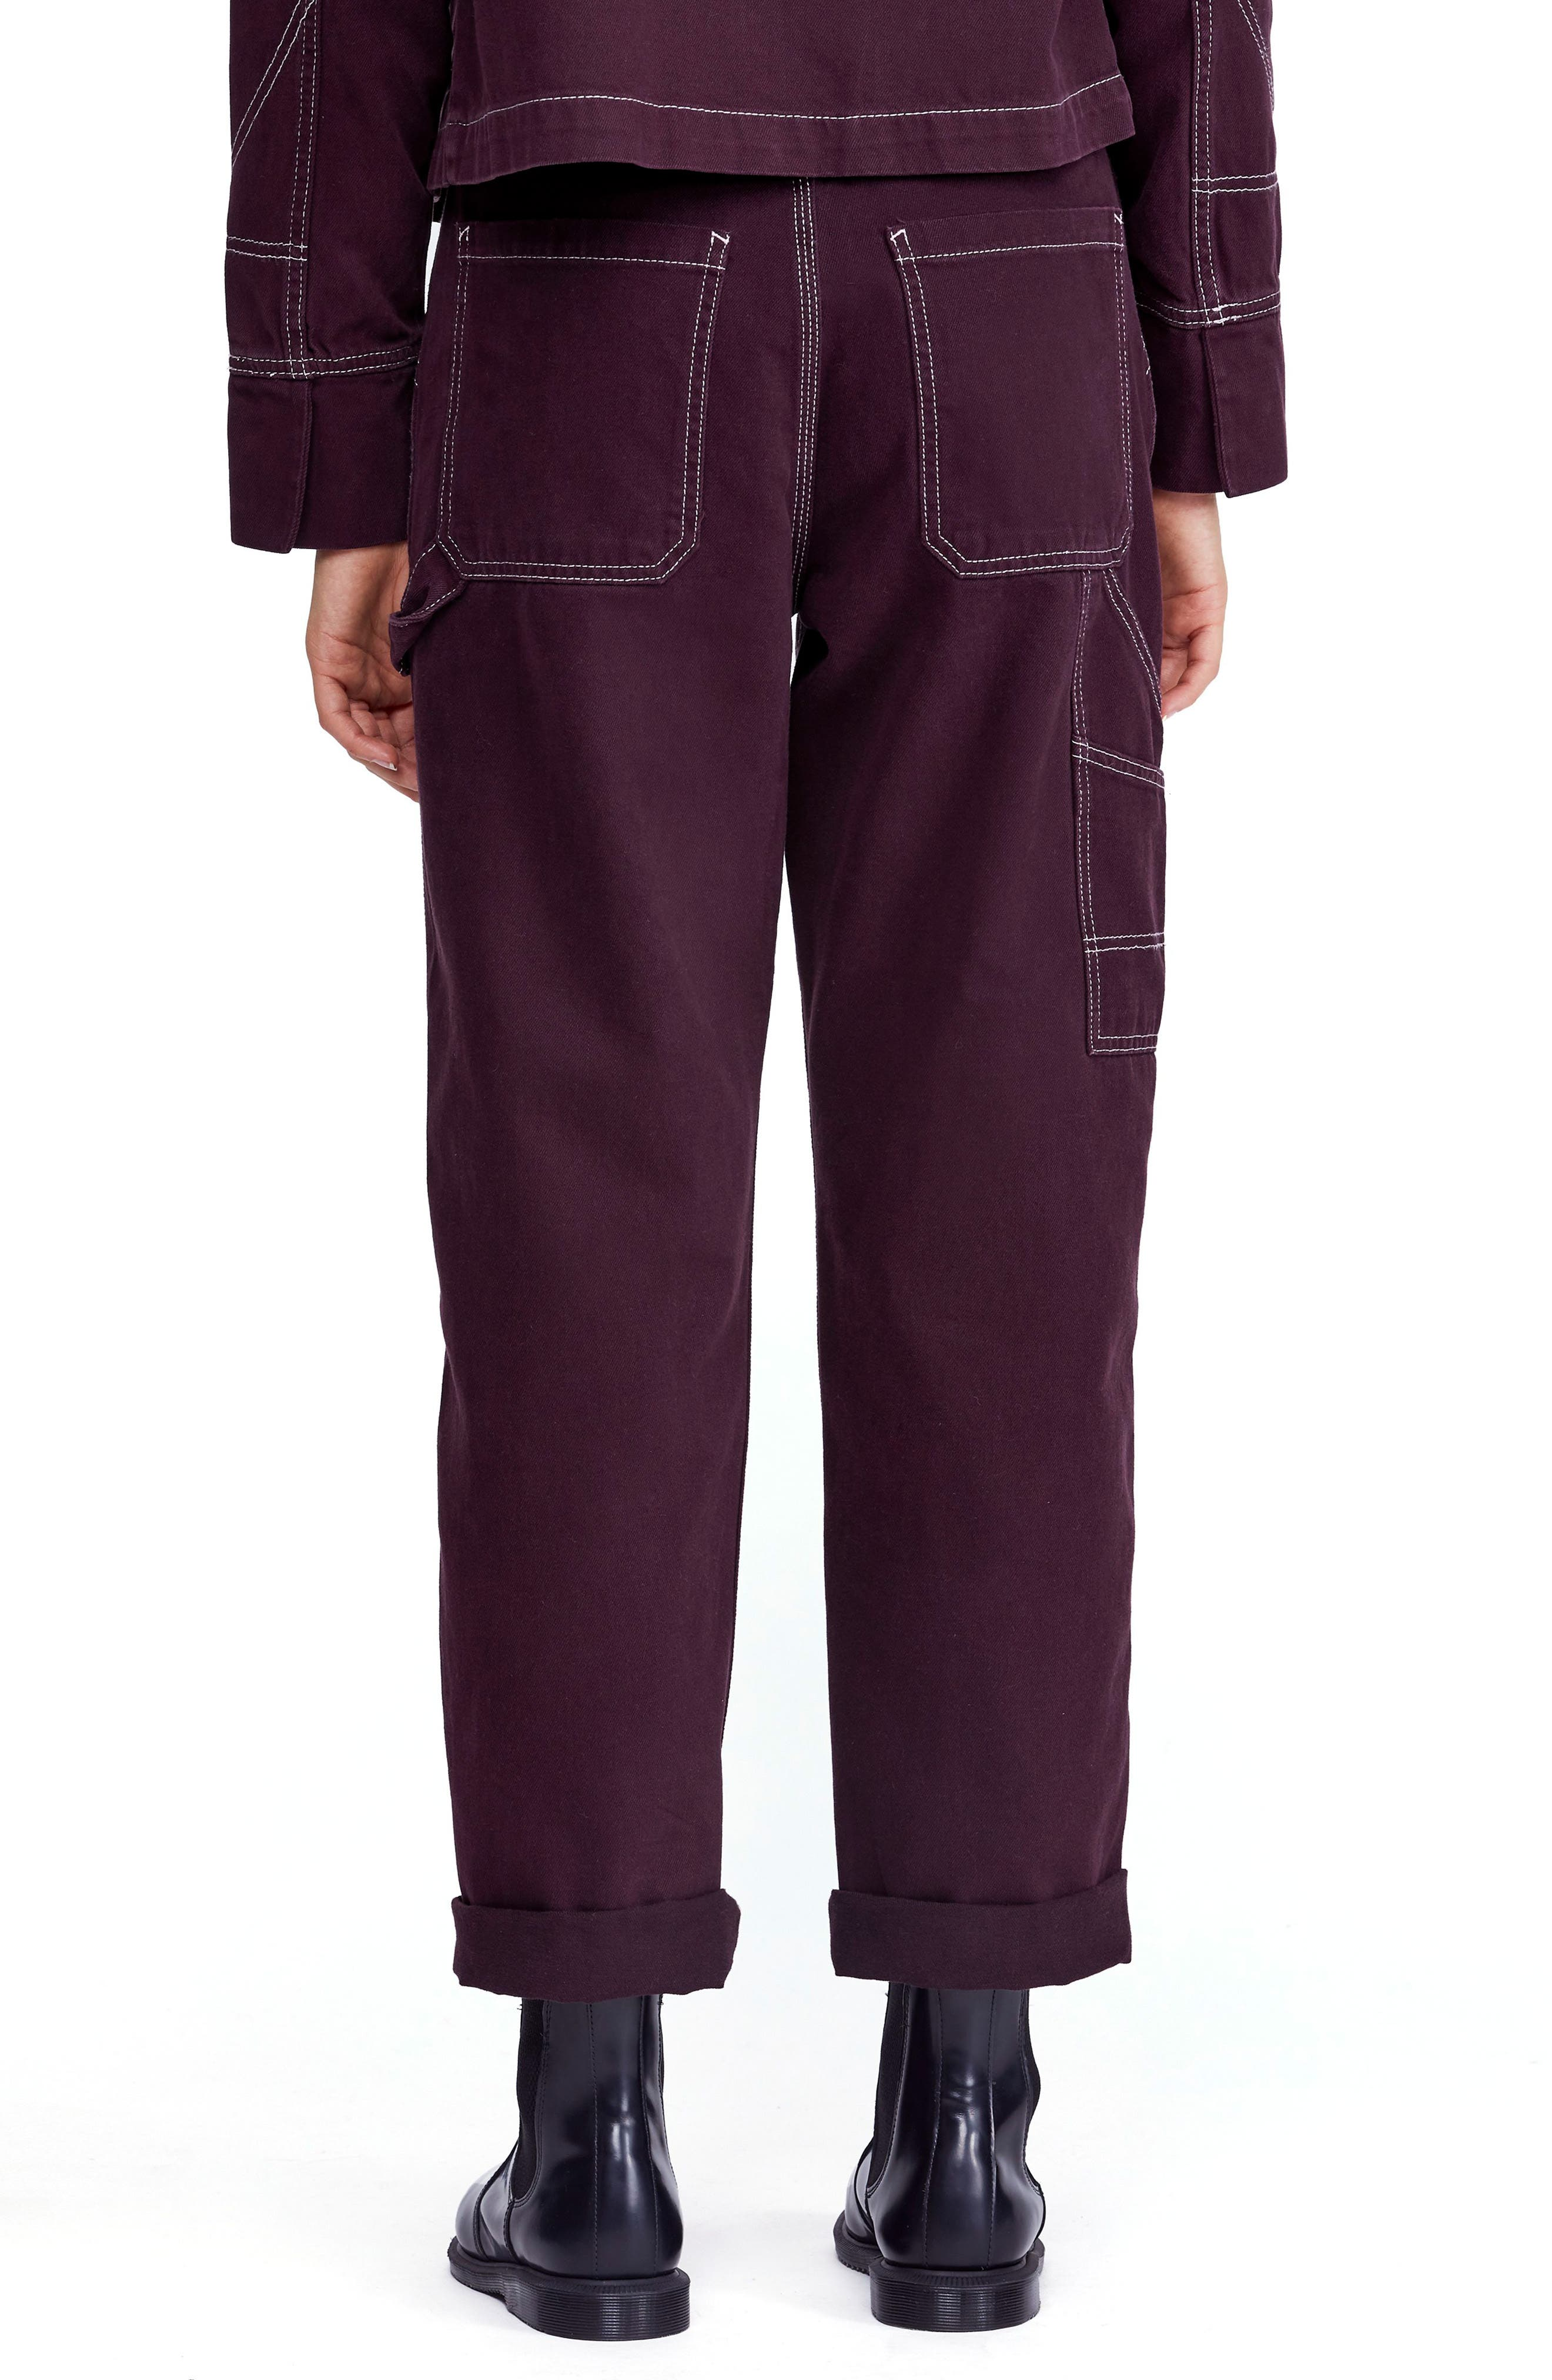 Urban Outfitters Workwear Pants,                             Alternate thumbnail 2, color,                             WINE